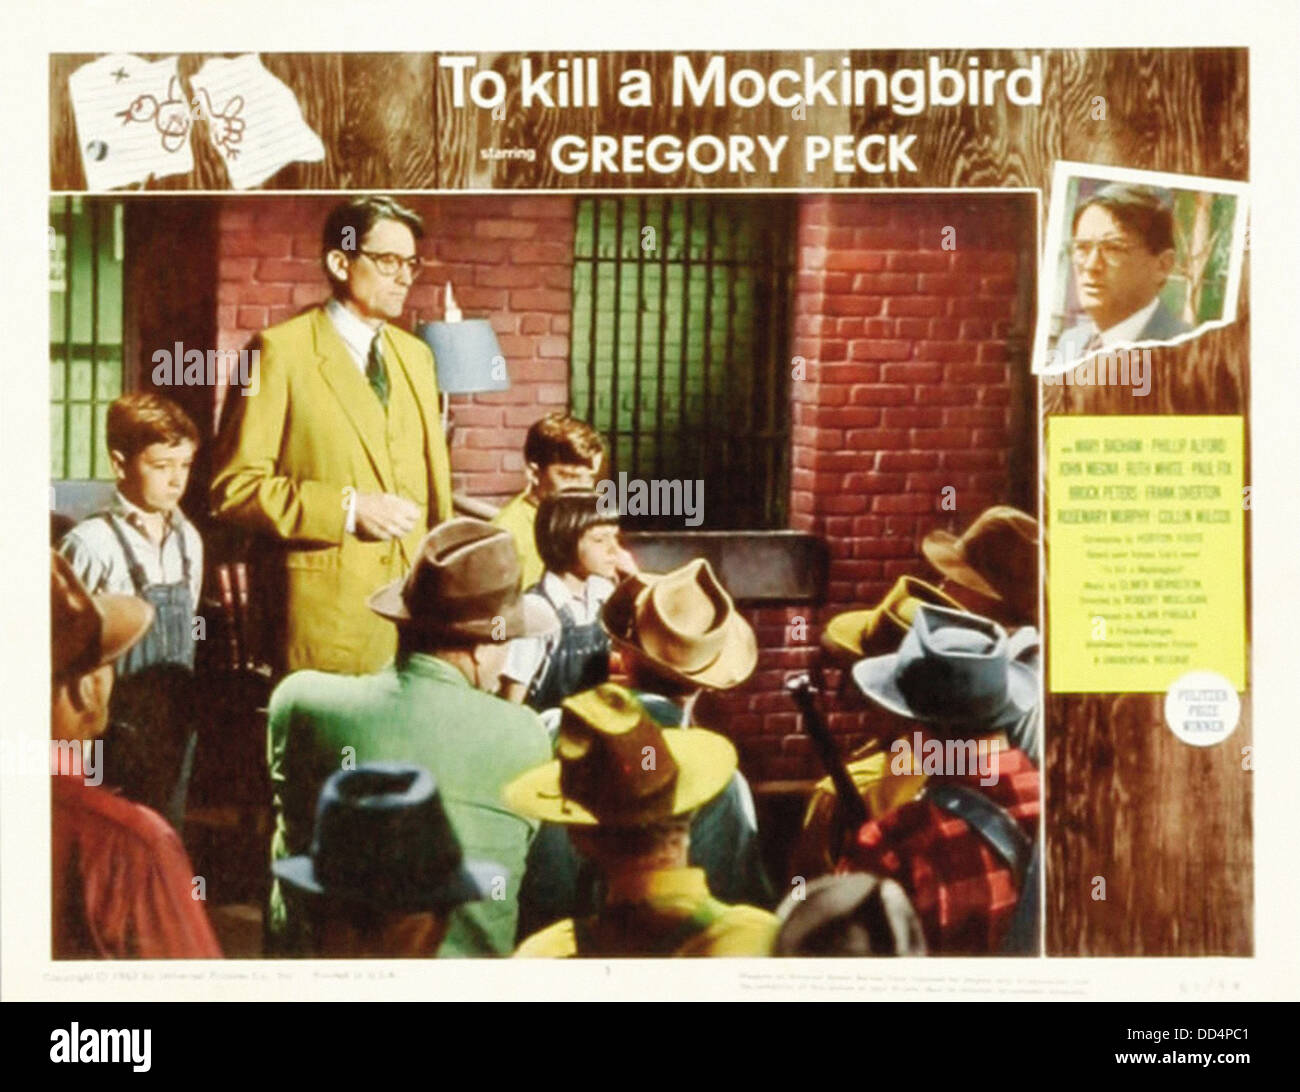 a critique of the film by robert mulligan to kill a mockingbird Robert mulligan, in full robert patrick mulligan, (born august 23 mulligan's next film was the downbeat romance love with the proper stranger pakula then produced and mulligan directed to kill a mockingbird.